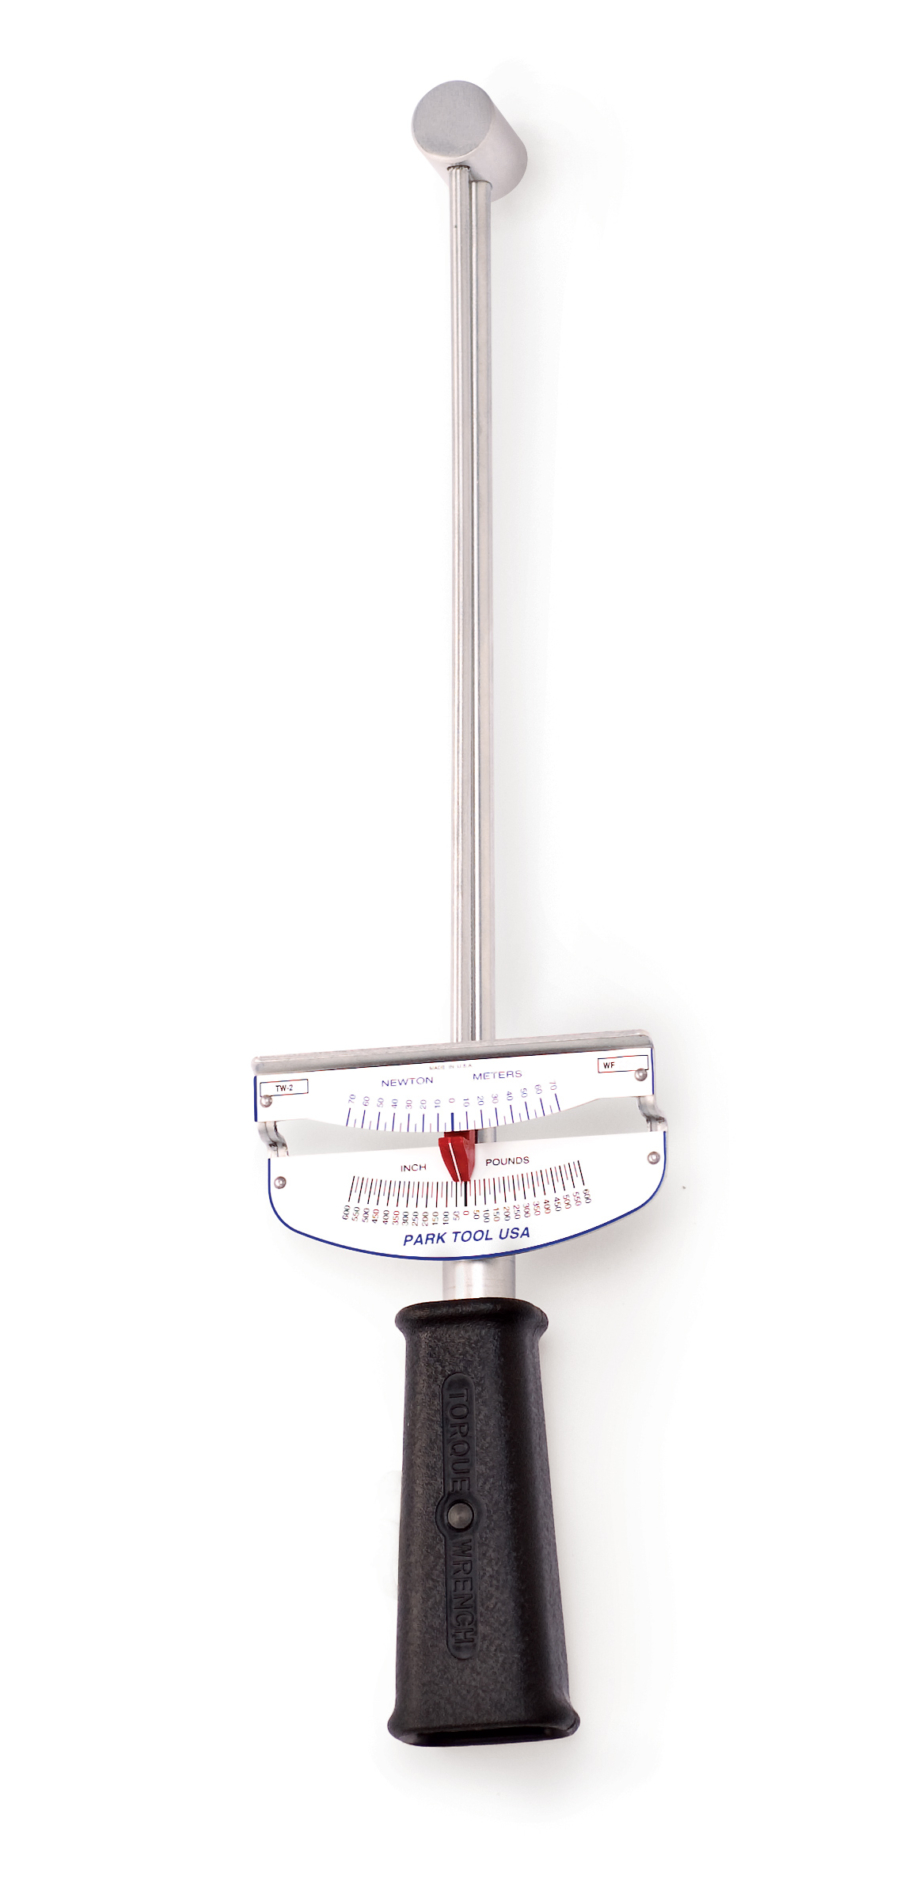 The Park Tool TW-2 Torque Wrench, enlarged